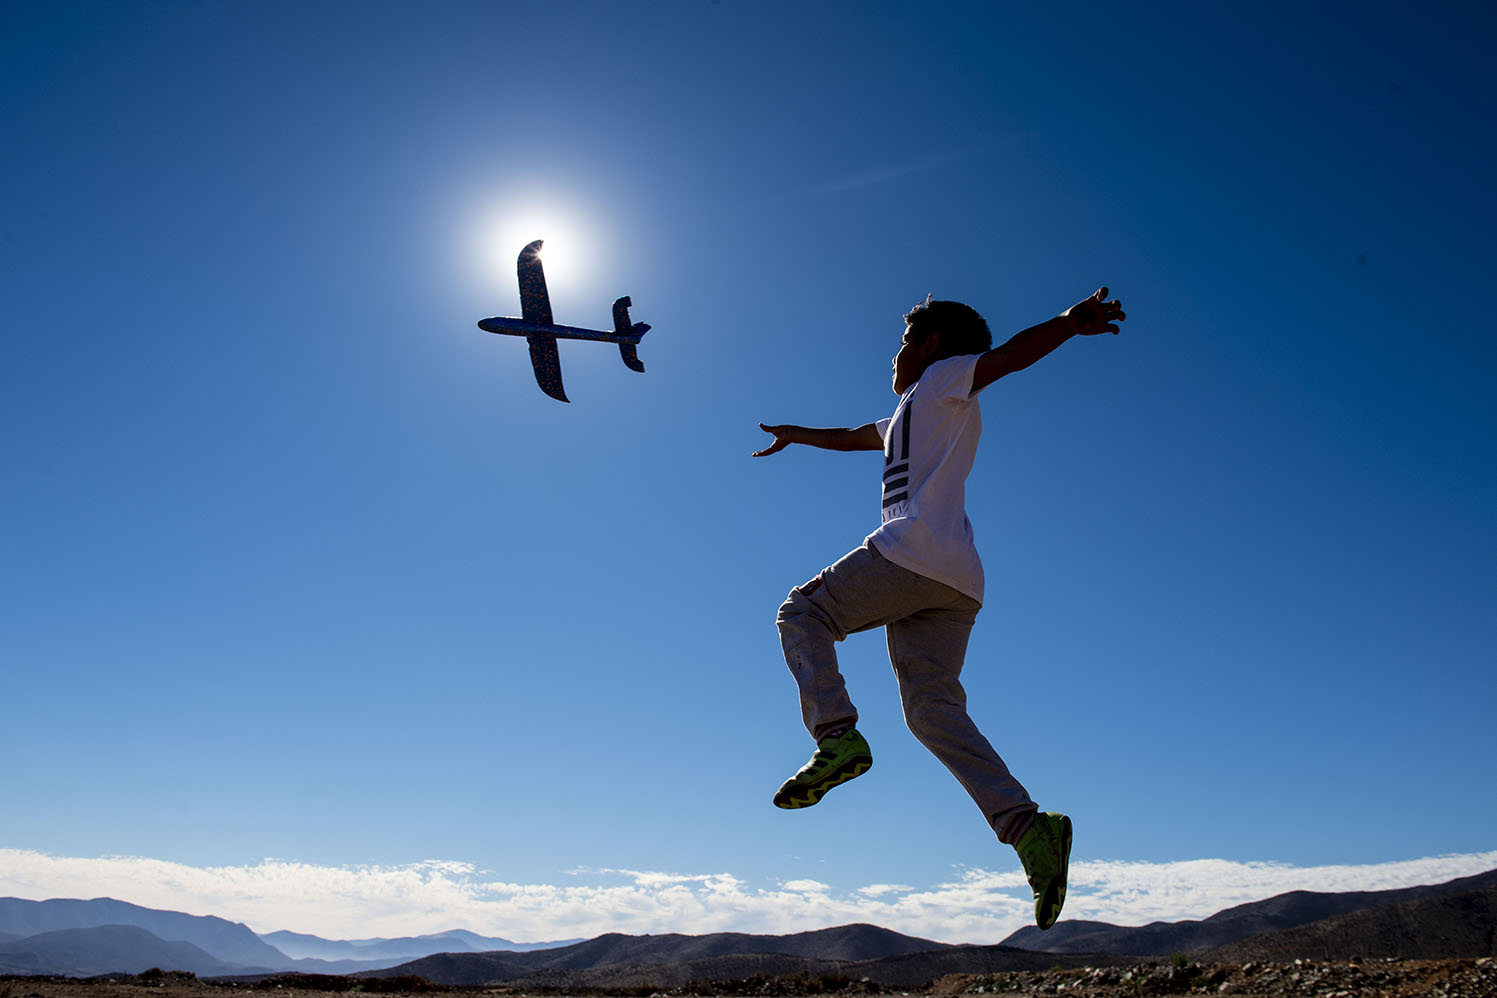 A boy plays with a toy plane on the eve of a solar eclipse in La Higuera in the Atacama desert north of Santiago, Chile, on July 1. MARTIN BERNETTI/AFP/Getty Images